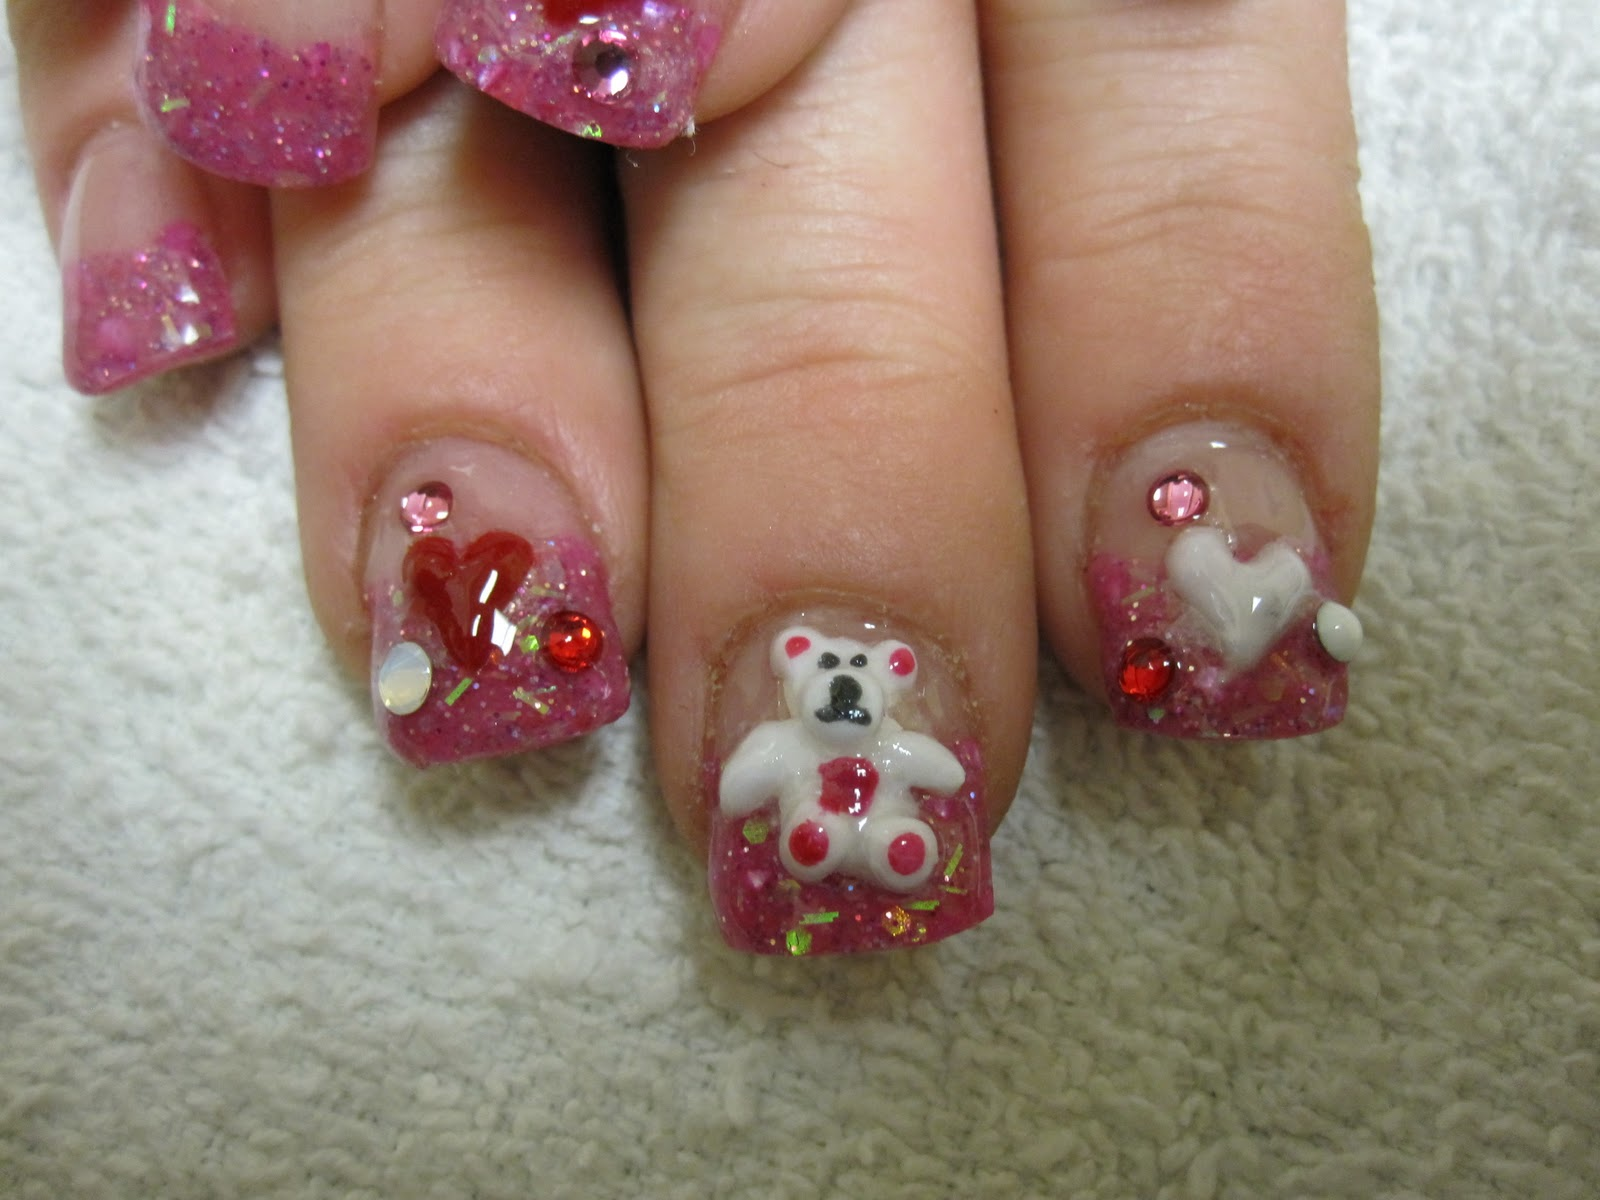 Nail art las vegas valentines day nail photos valentines day nail photos prinsesfo Images